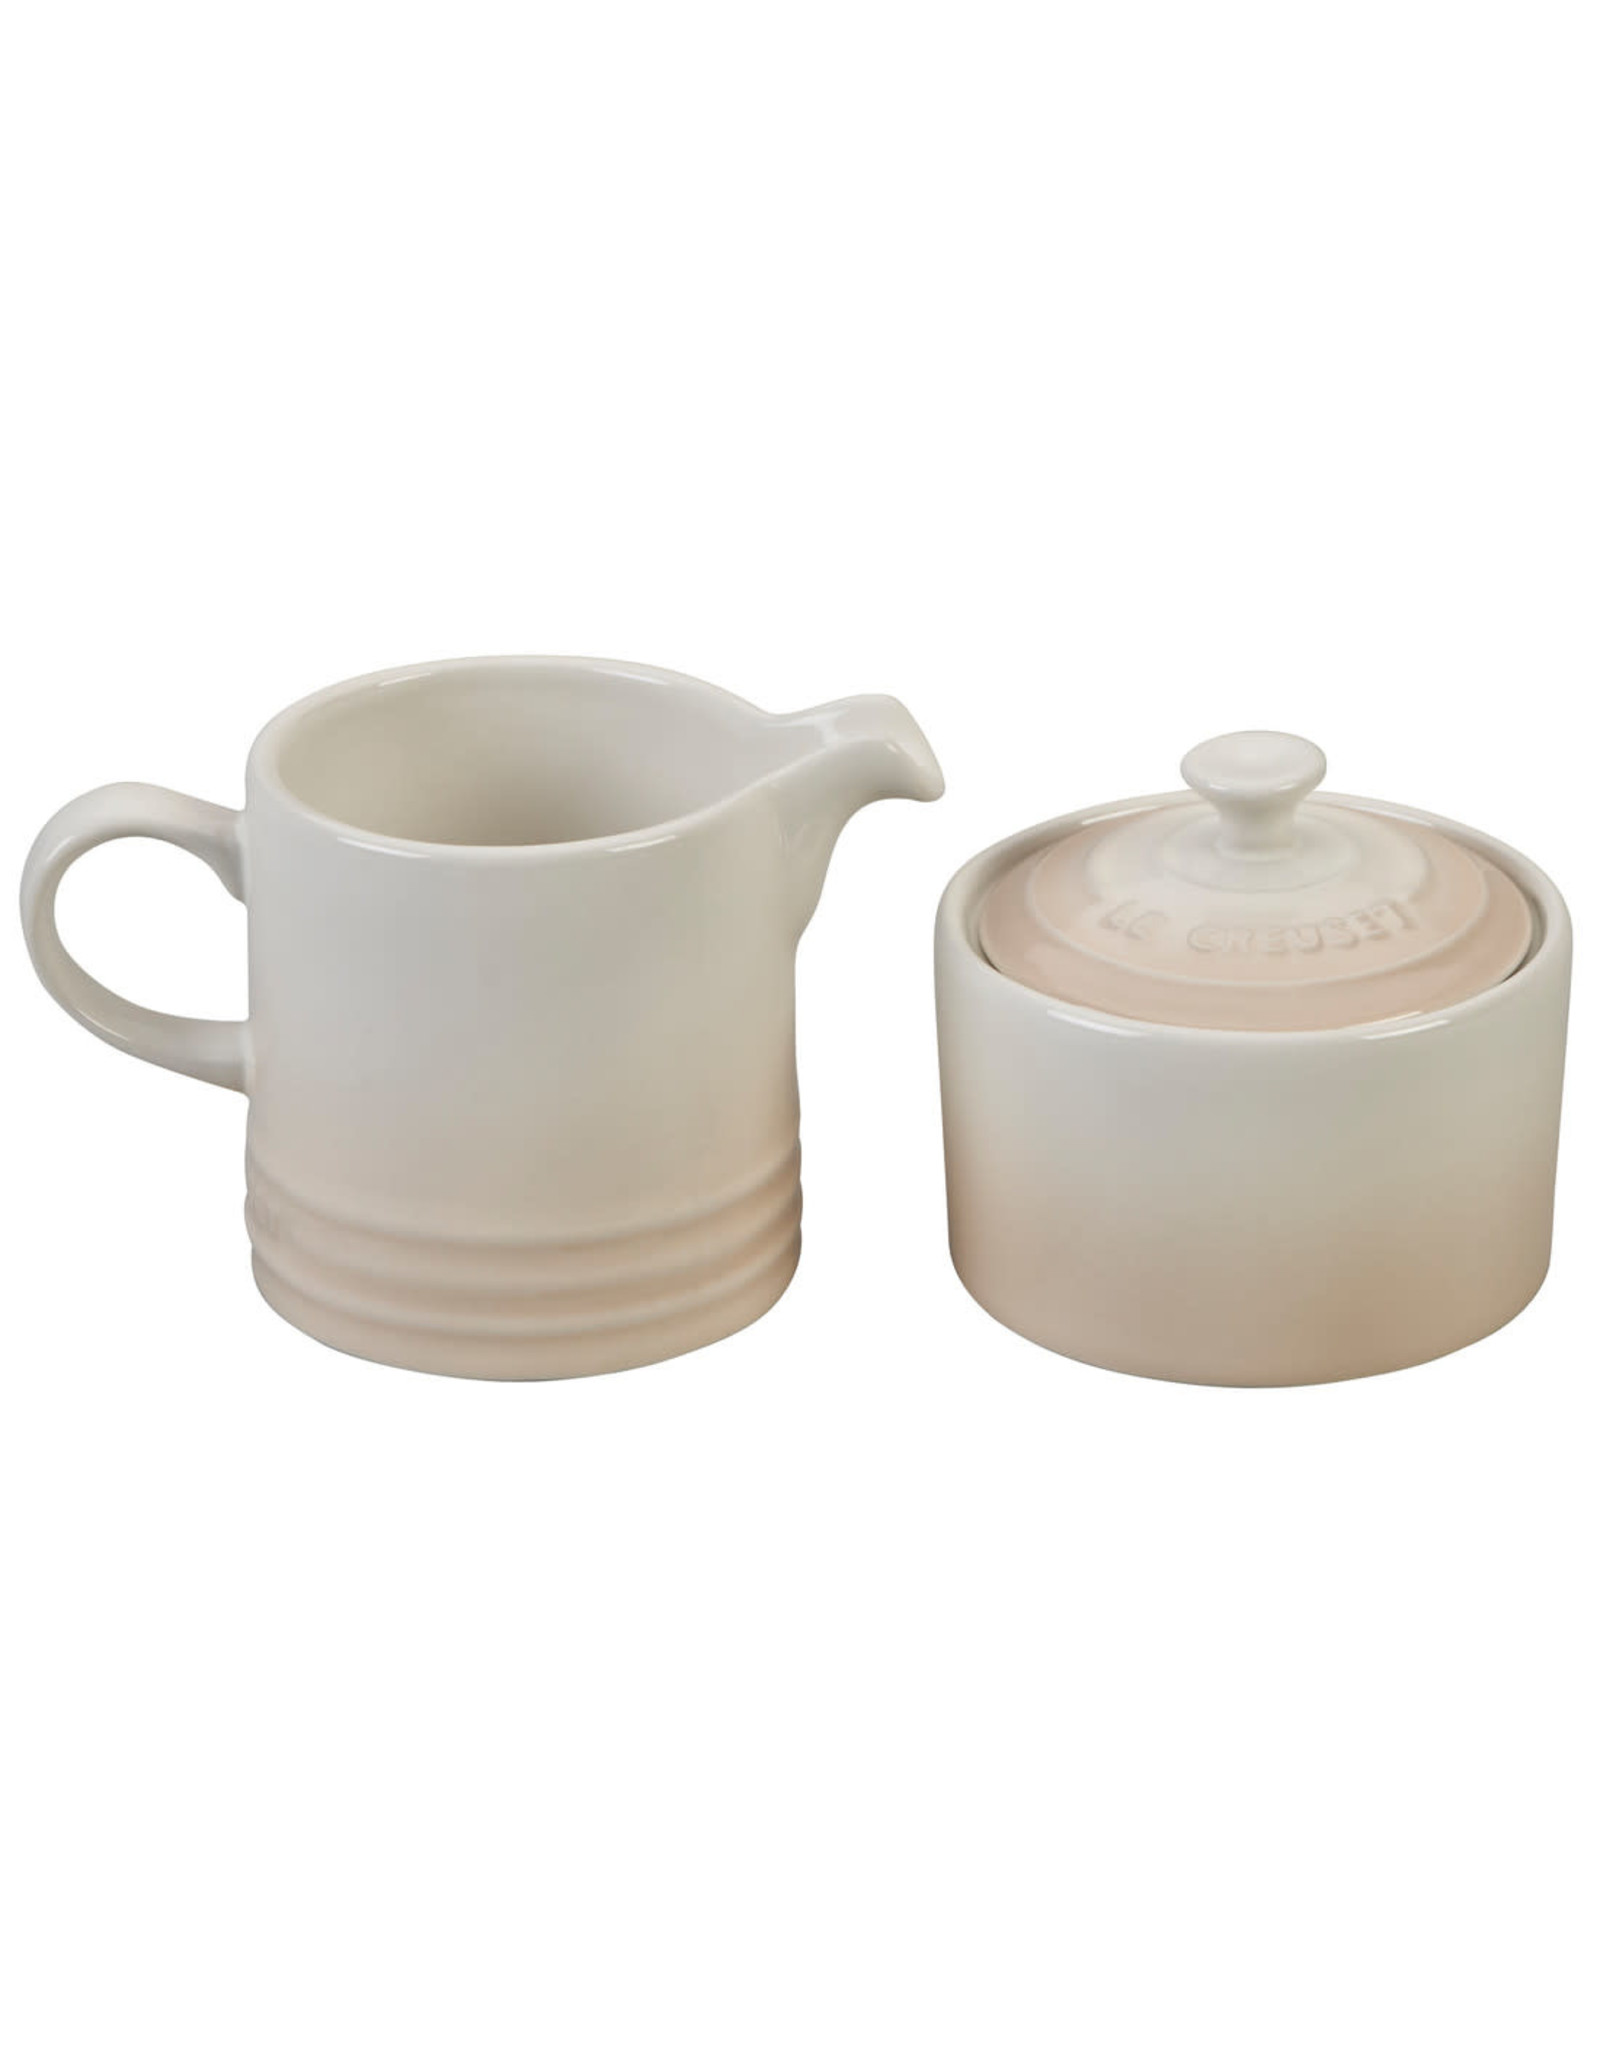 Le Creuset Le Creuset Cream & Sugar Set Meringue